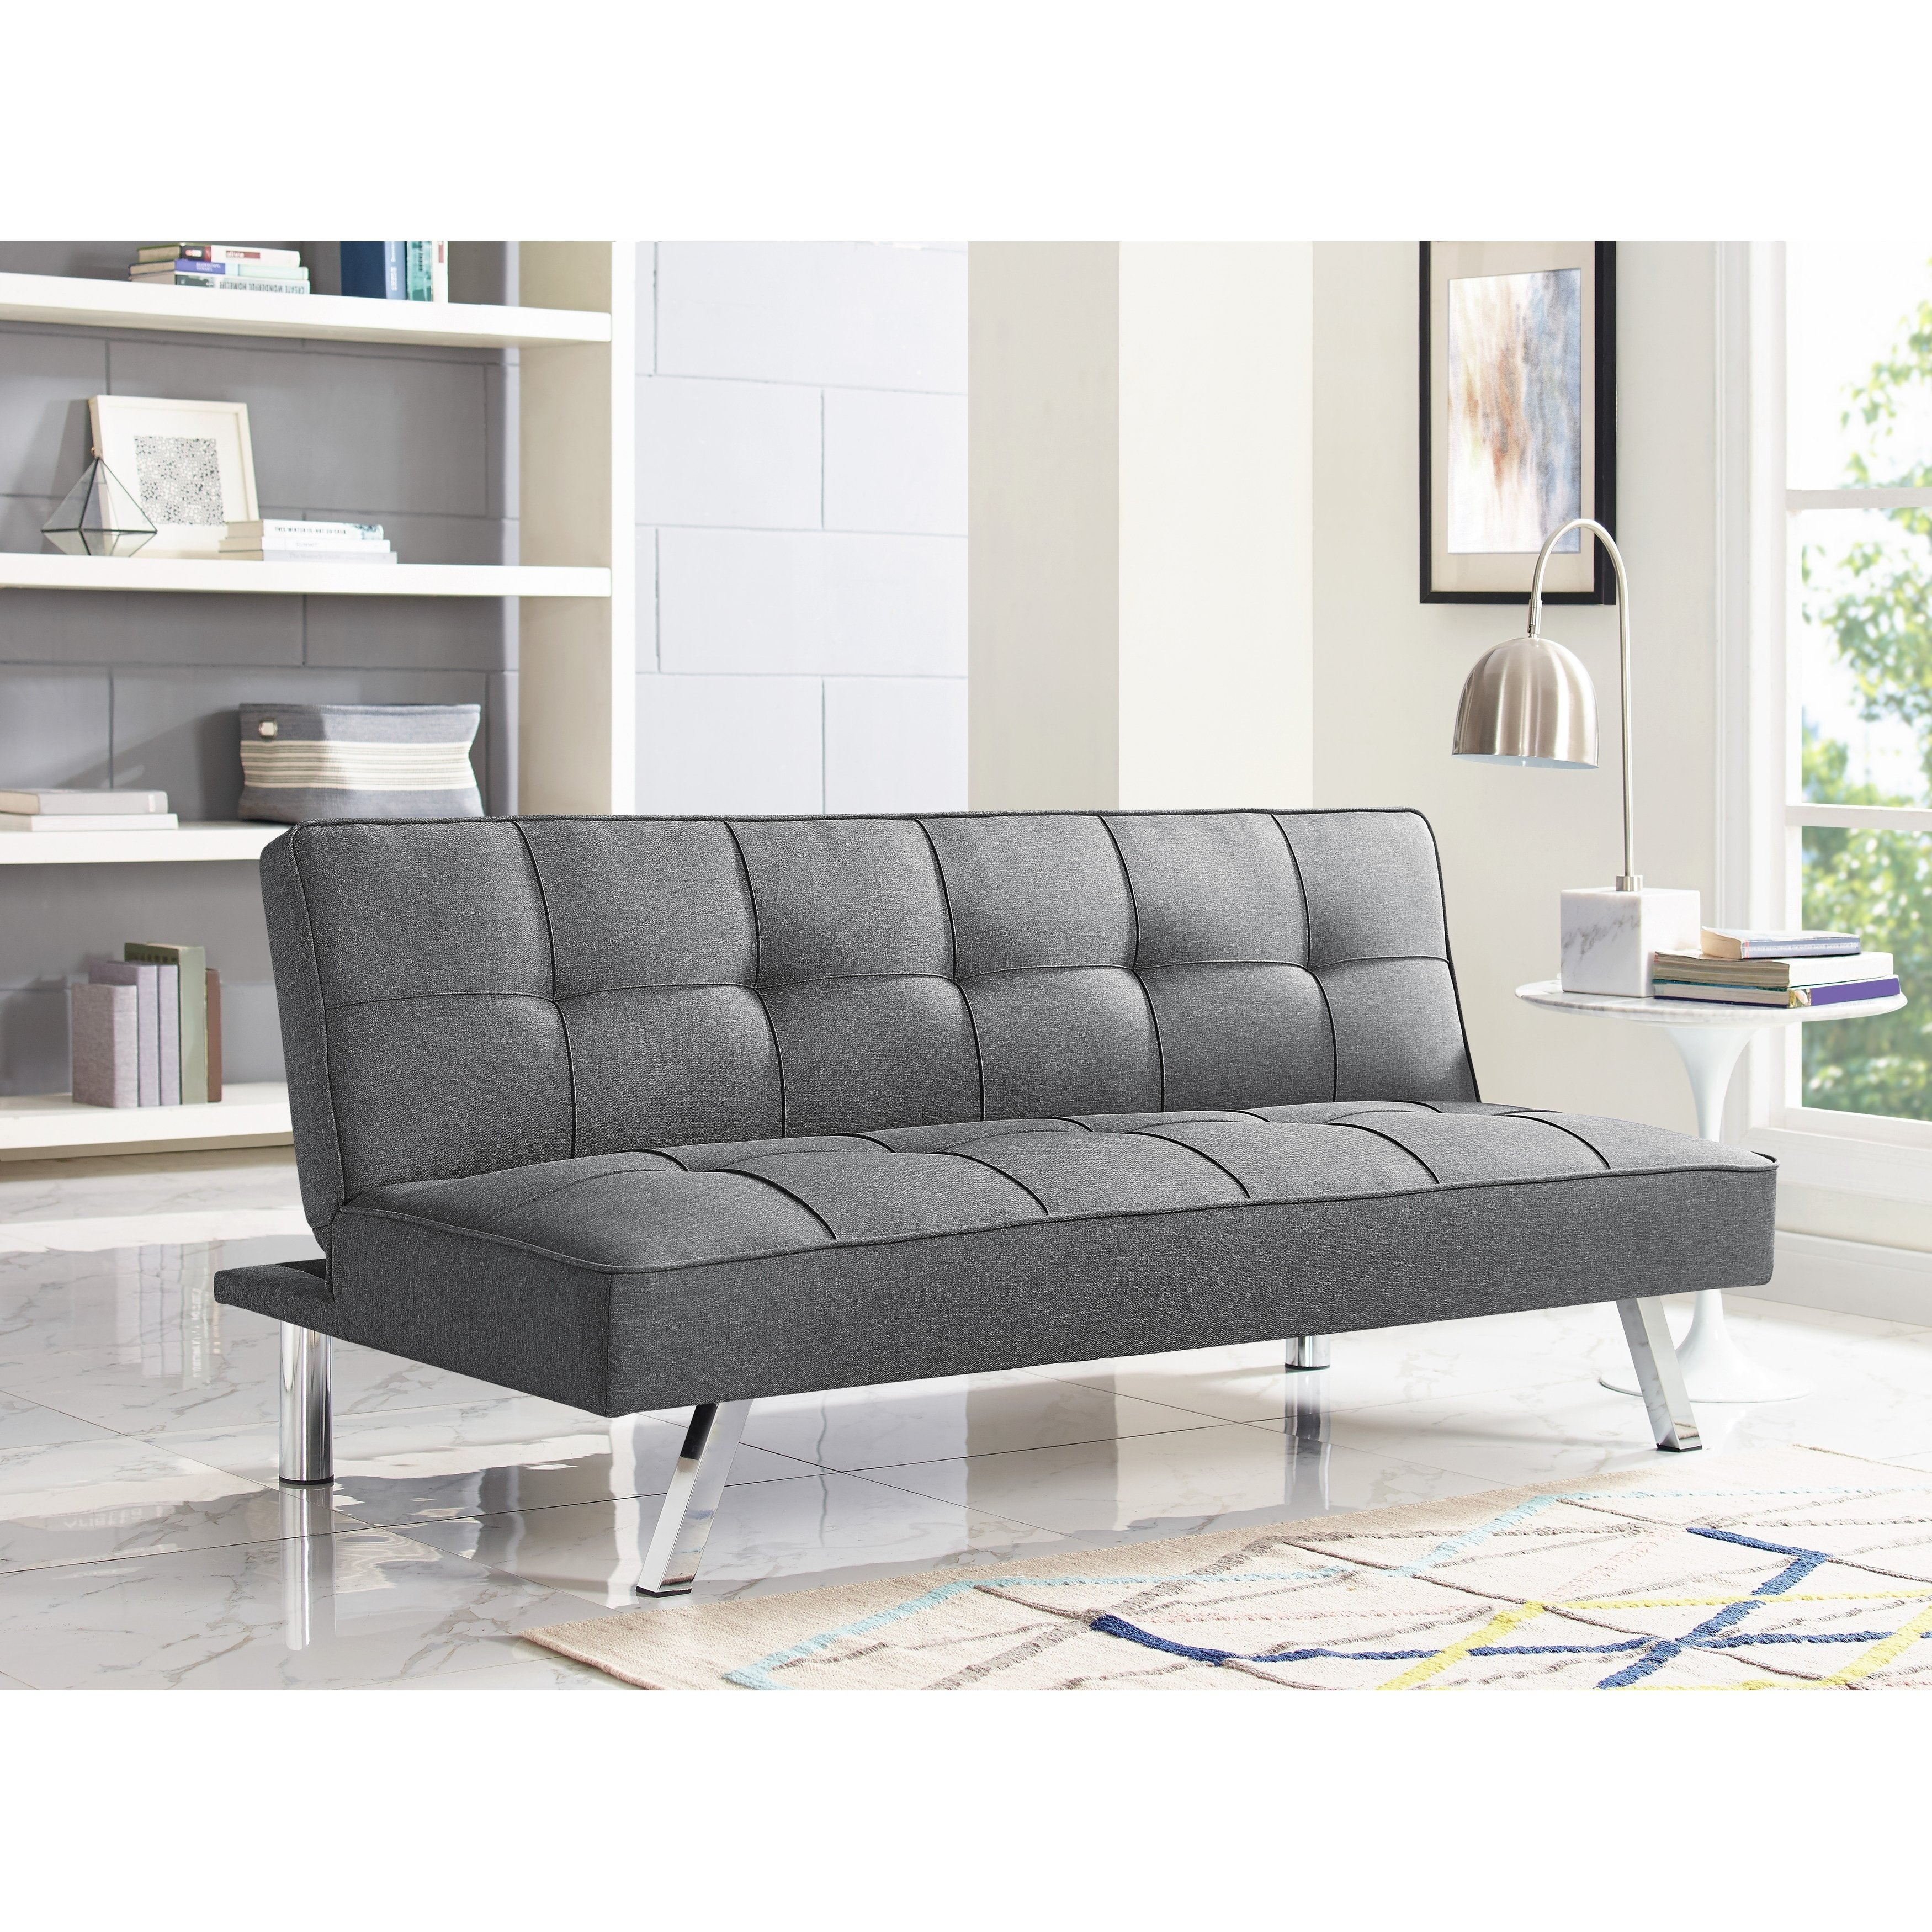 Shop Serta Charlie Tufted Grey Upholstered Convertible Sofa – Free Inside Cohen Foam Oversized Sofa Chairs (View 6 of 25)